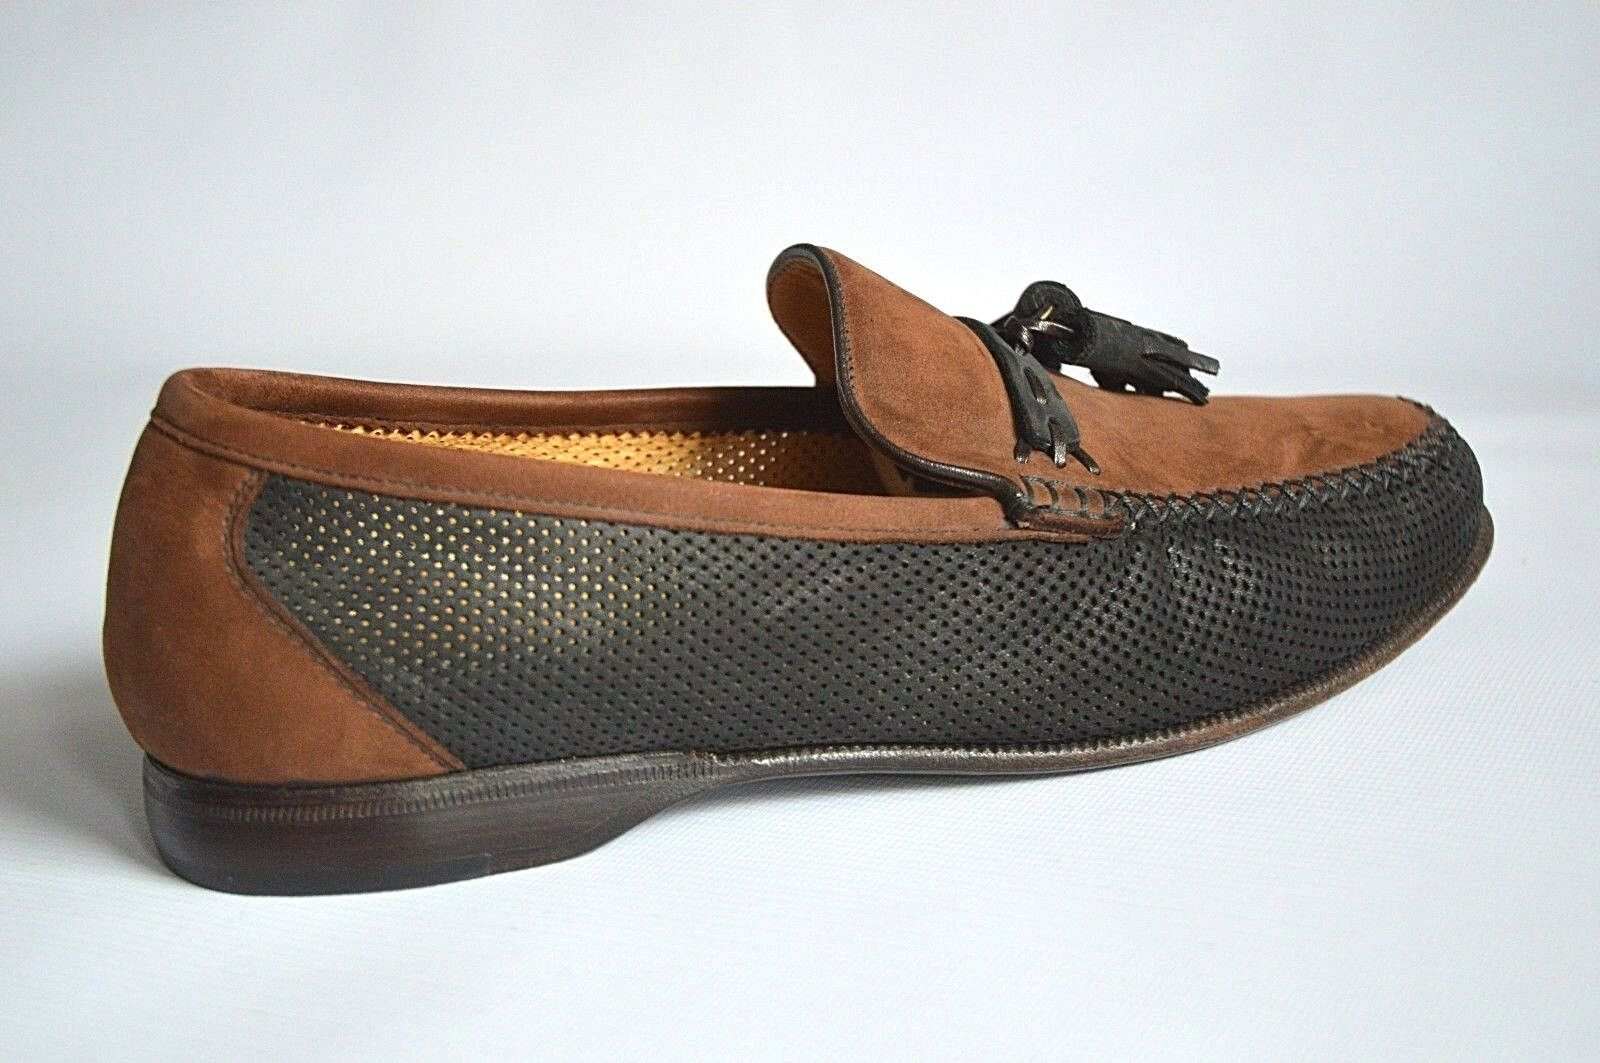 MORESCHI BROWN/BLACK - PERFORATED LEATHER TASSEL LOAFERS - BROWN/BLACK UK 6 EUR 40 US 7 615707